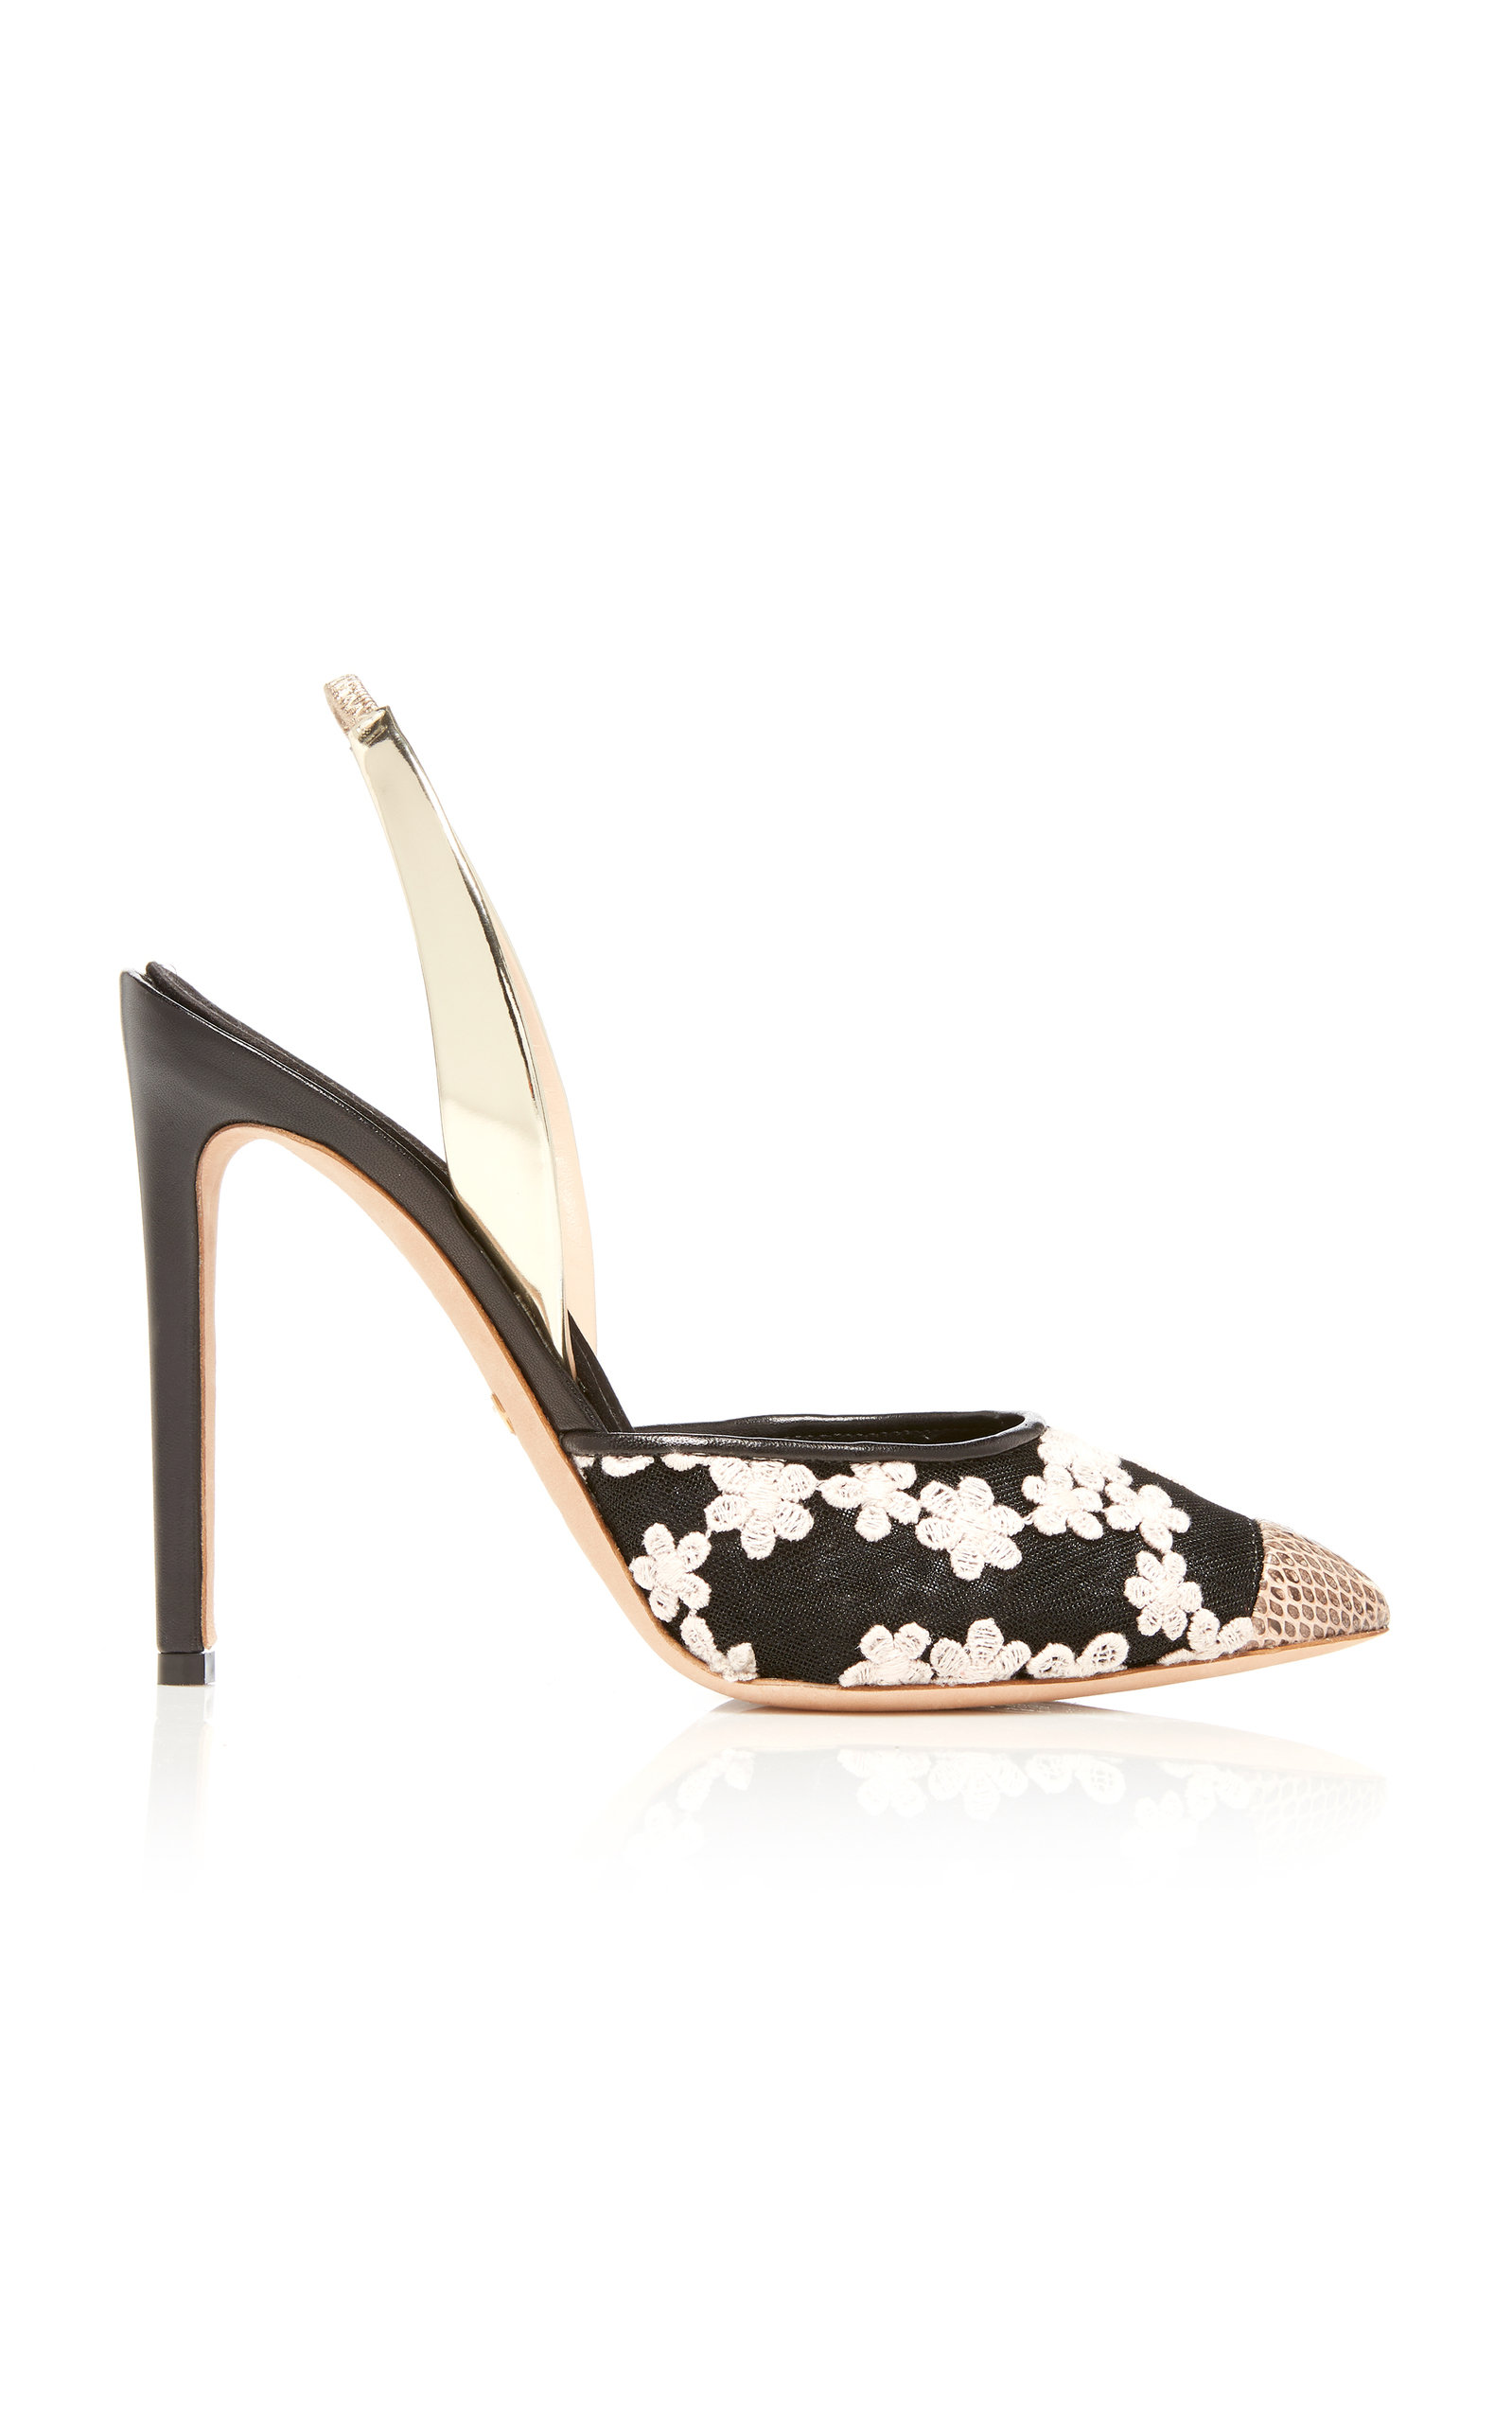 Star Slingback Pump Giambattista Valli Cheap Sale Extremely cXDxQW61TH